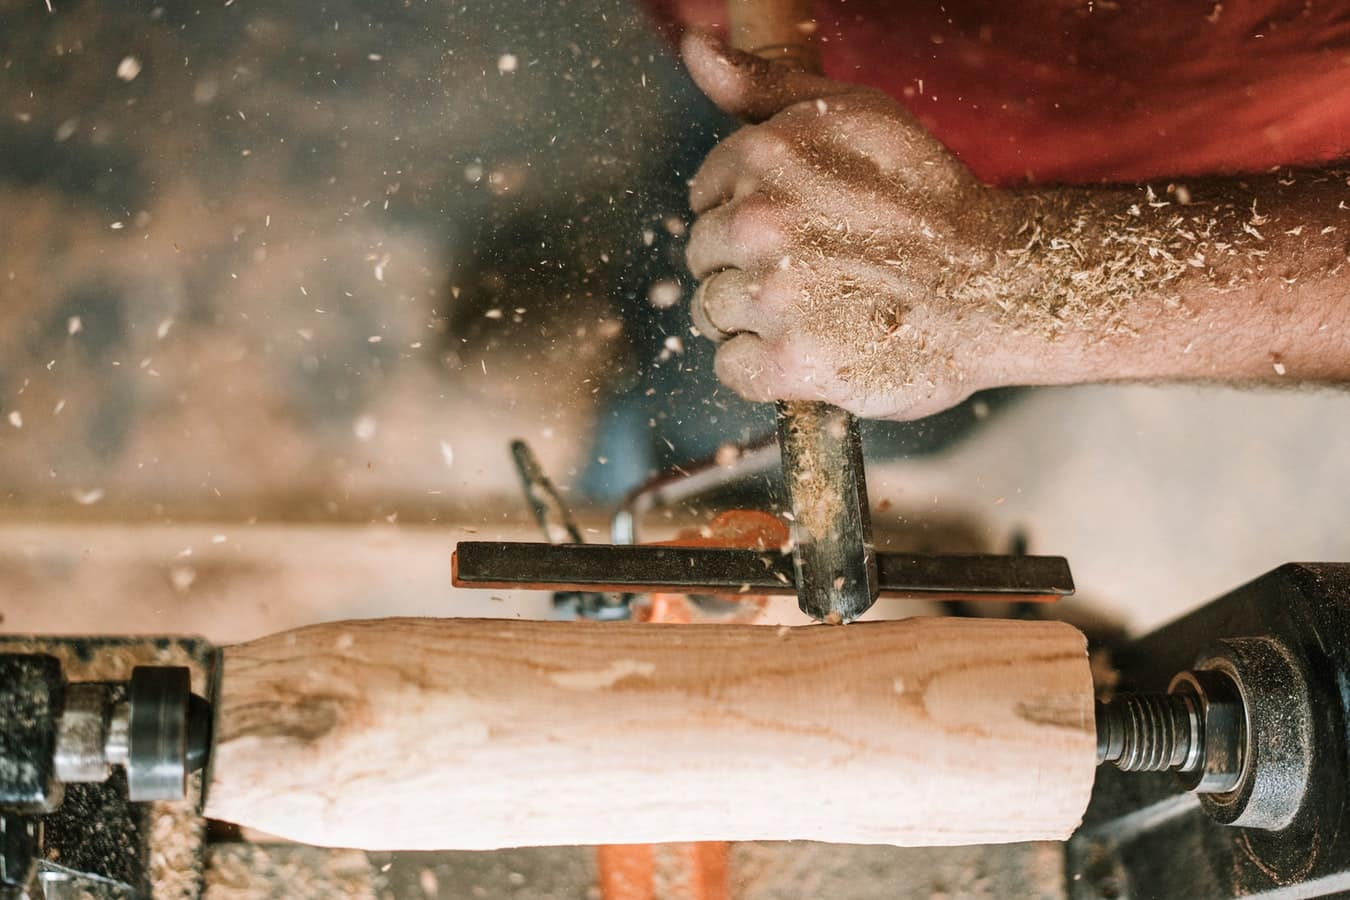 Woodworking Colorado Featured Image